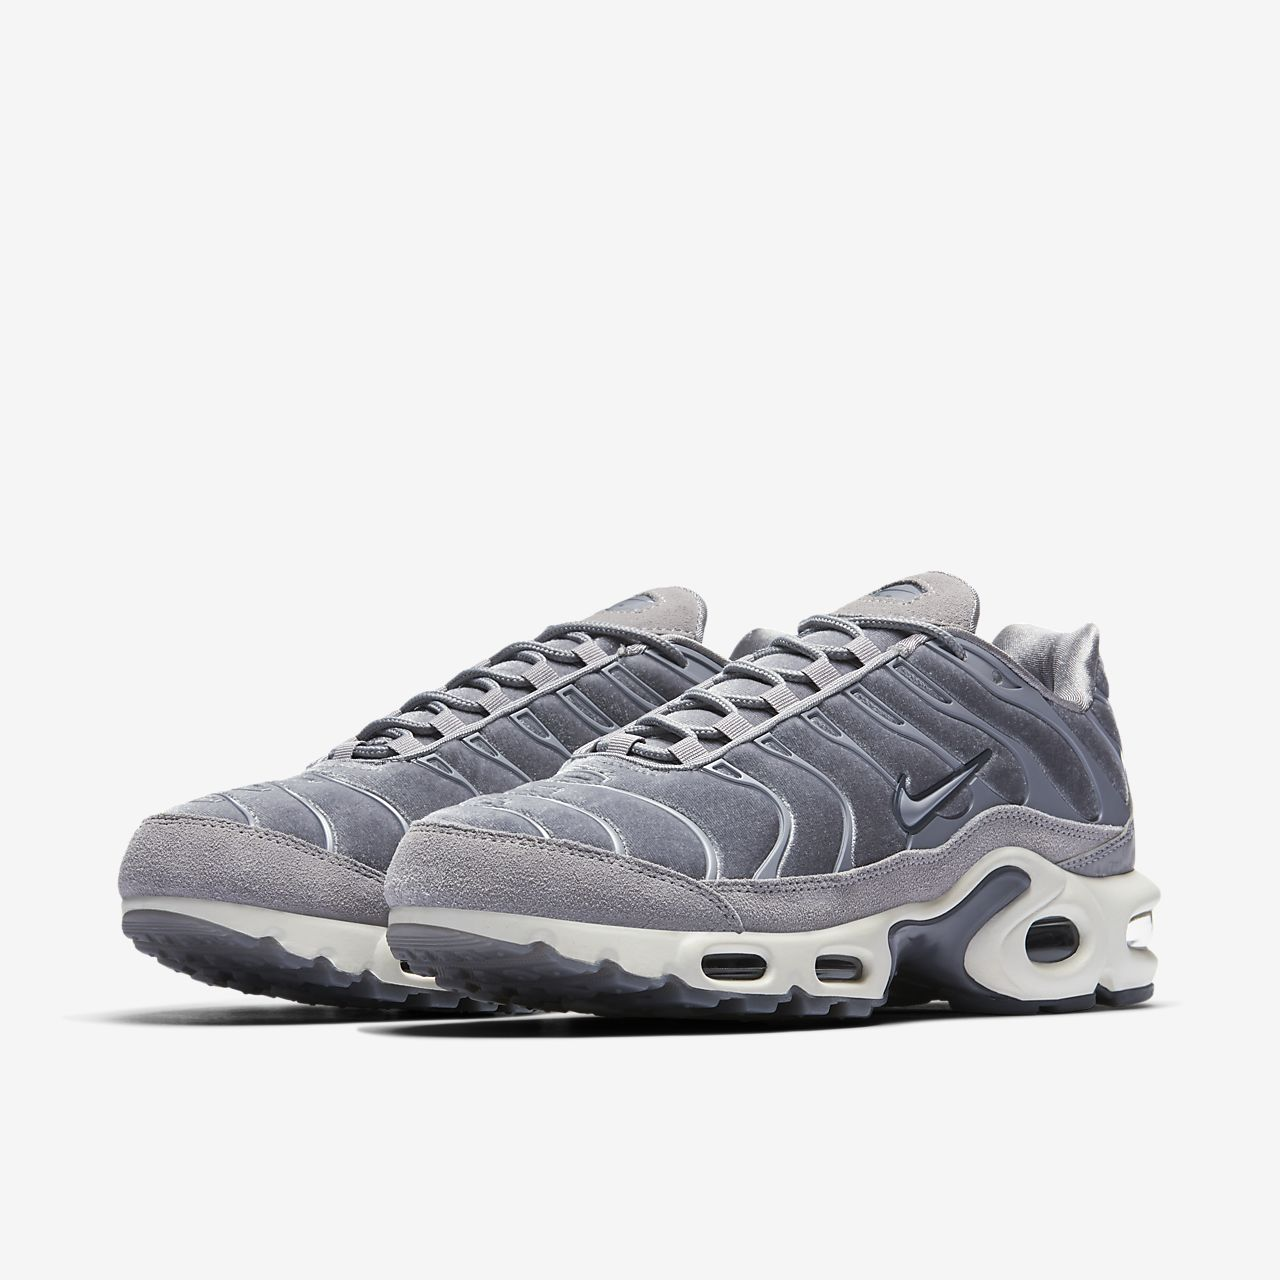 ... Nike Air Max Plus LX Women's Shoe